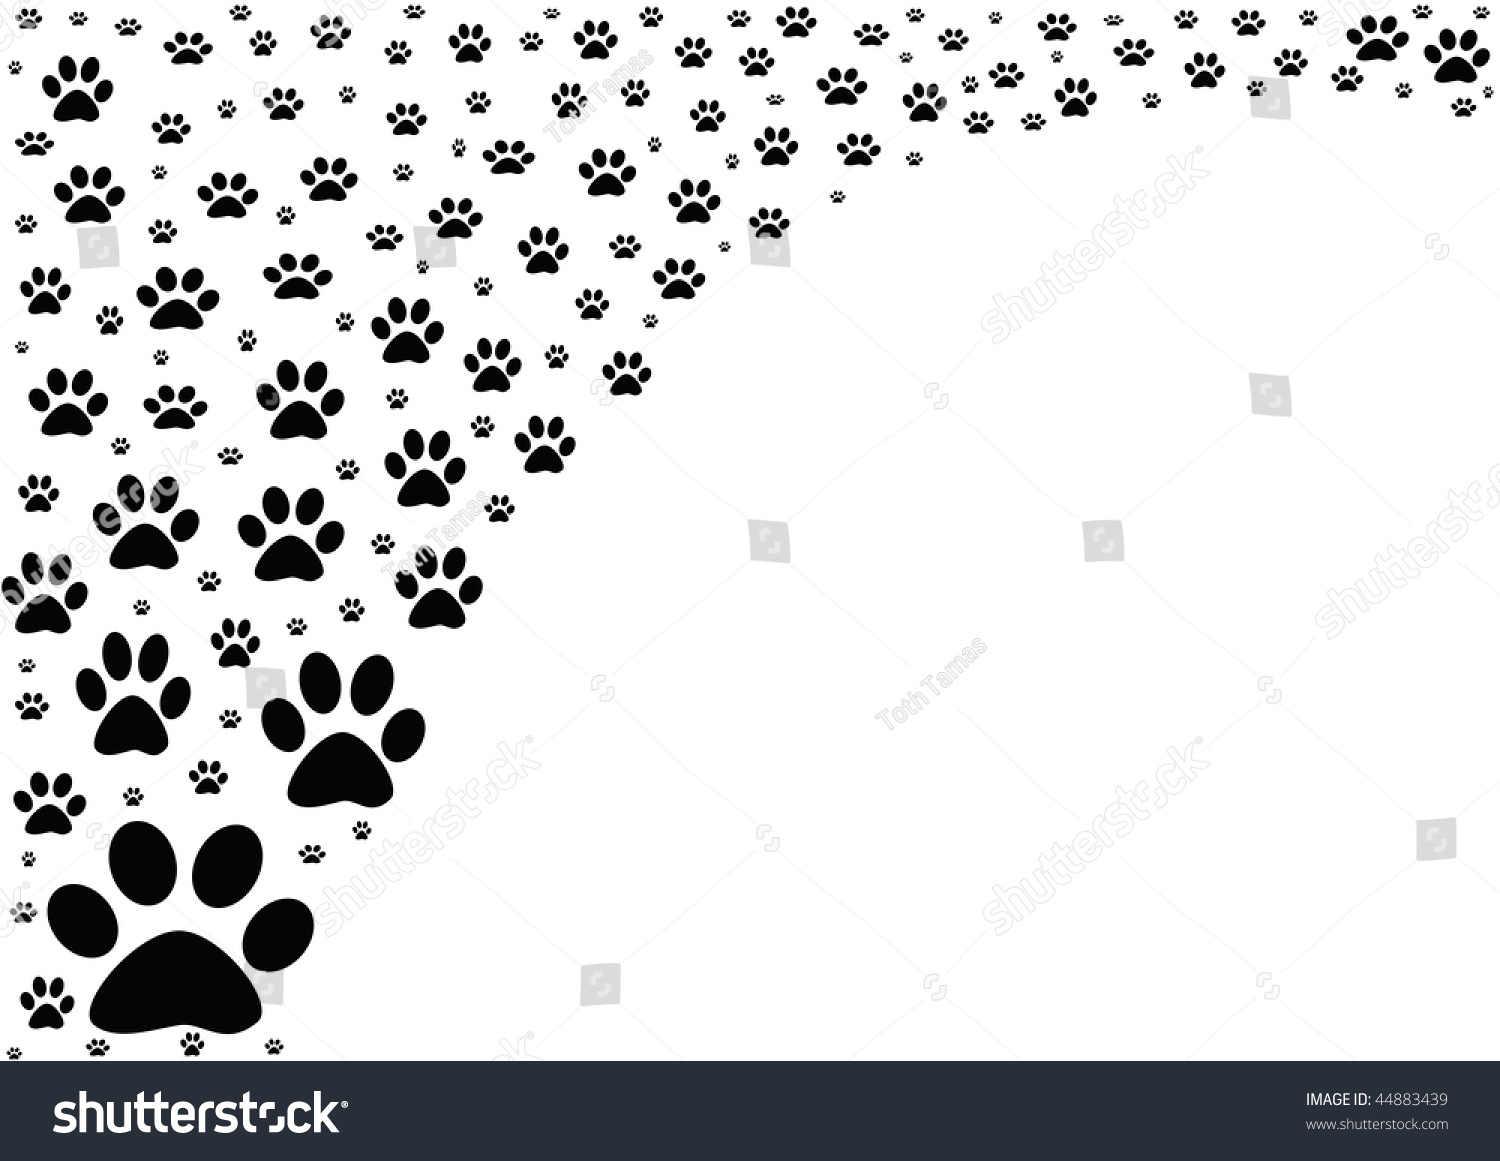 Background-Animal Footprints On White Background Stock ...